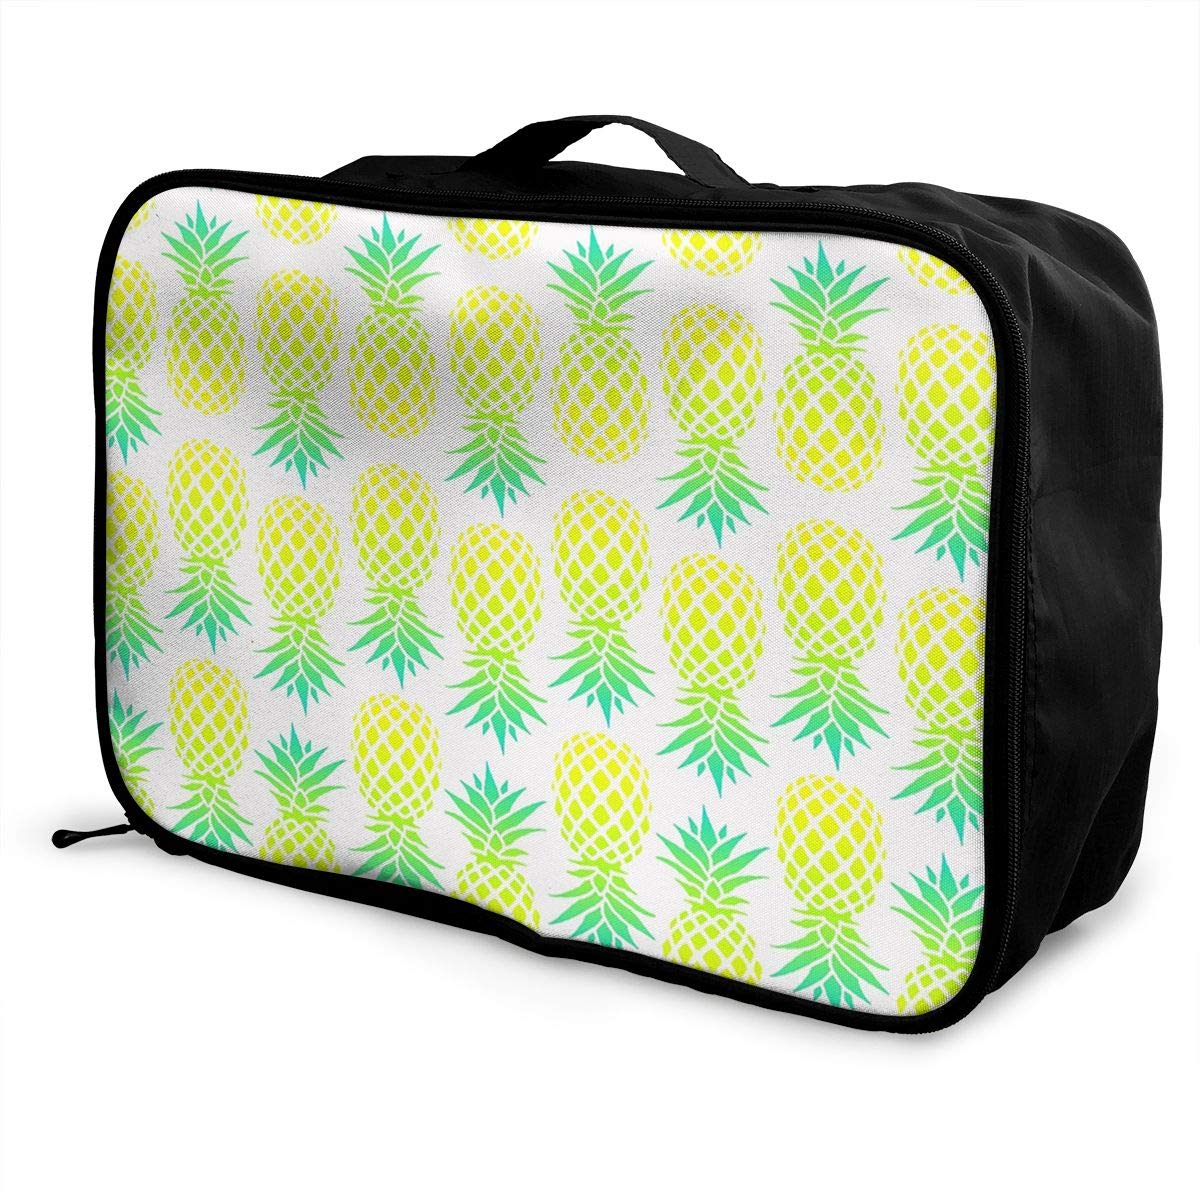 YueLJB Pineapple Pattern Lightweight Large Capacity Portable Luggage Bag Travel Duffel Bag Storage Carry Luggage Duffle Tote Bag